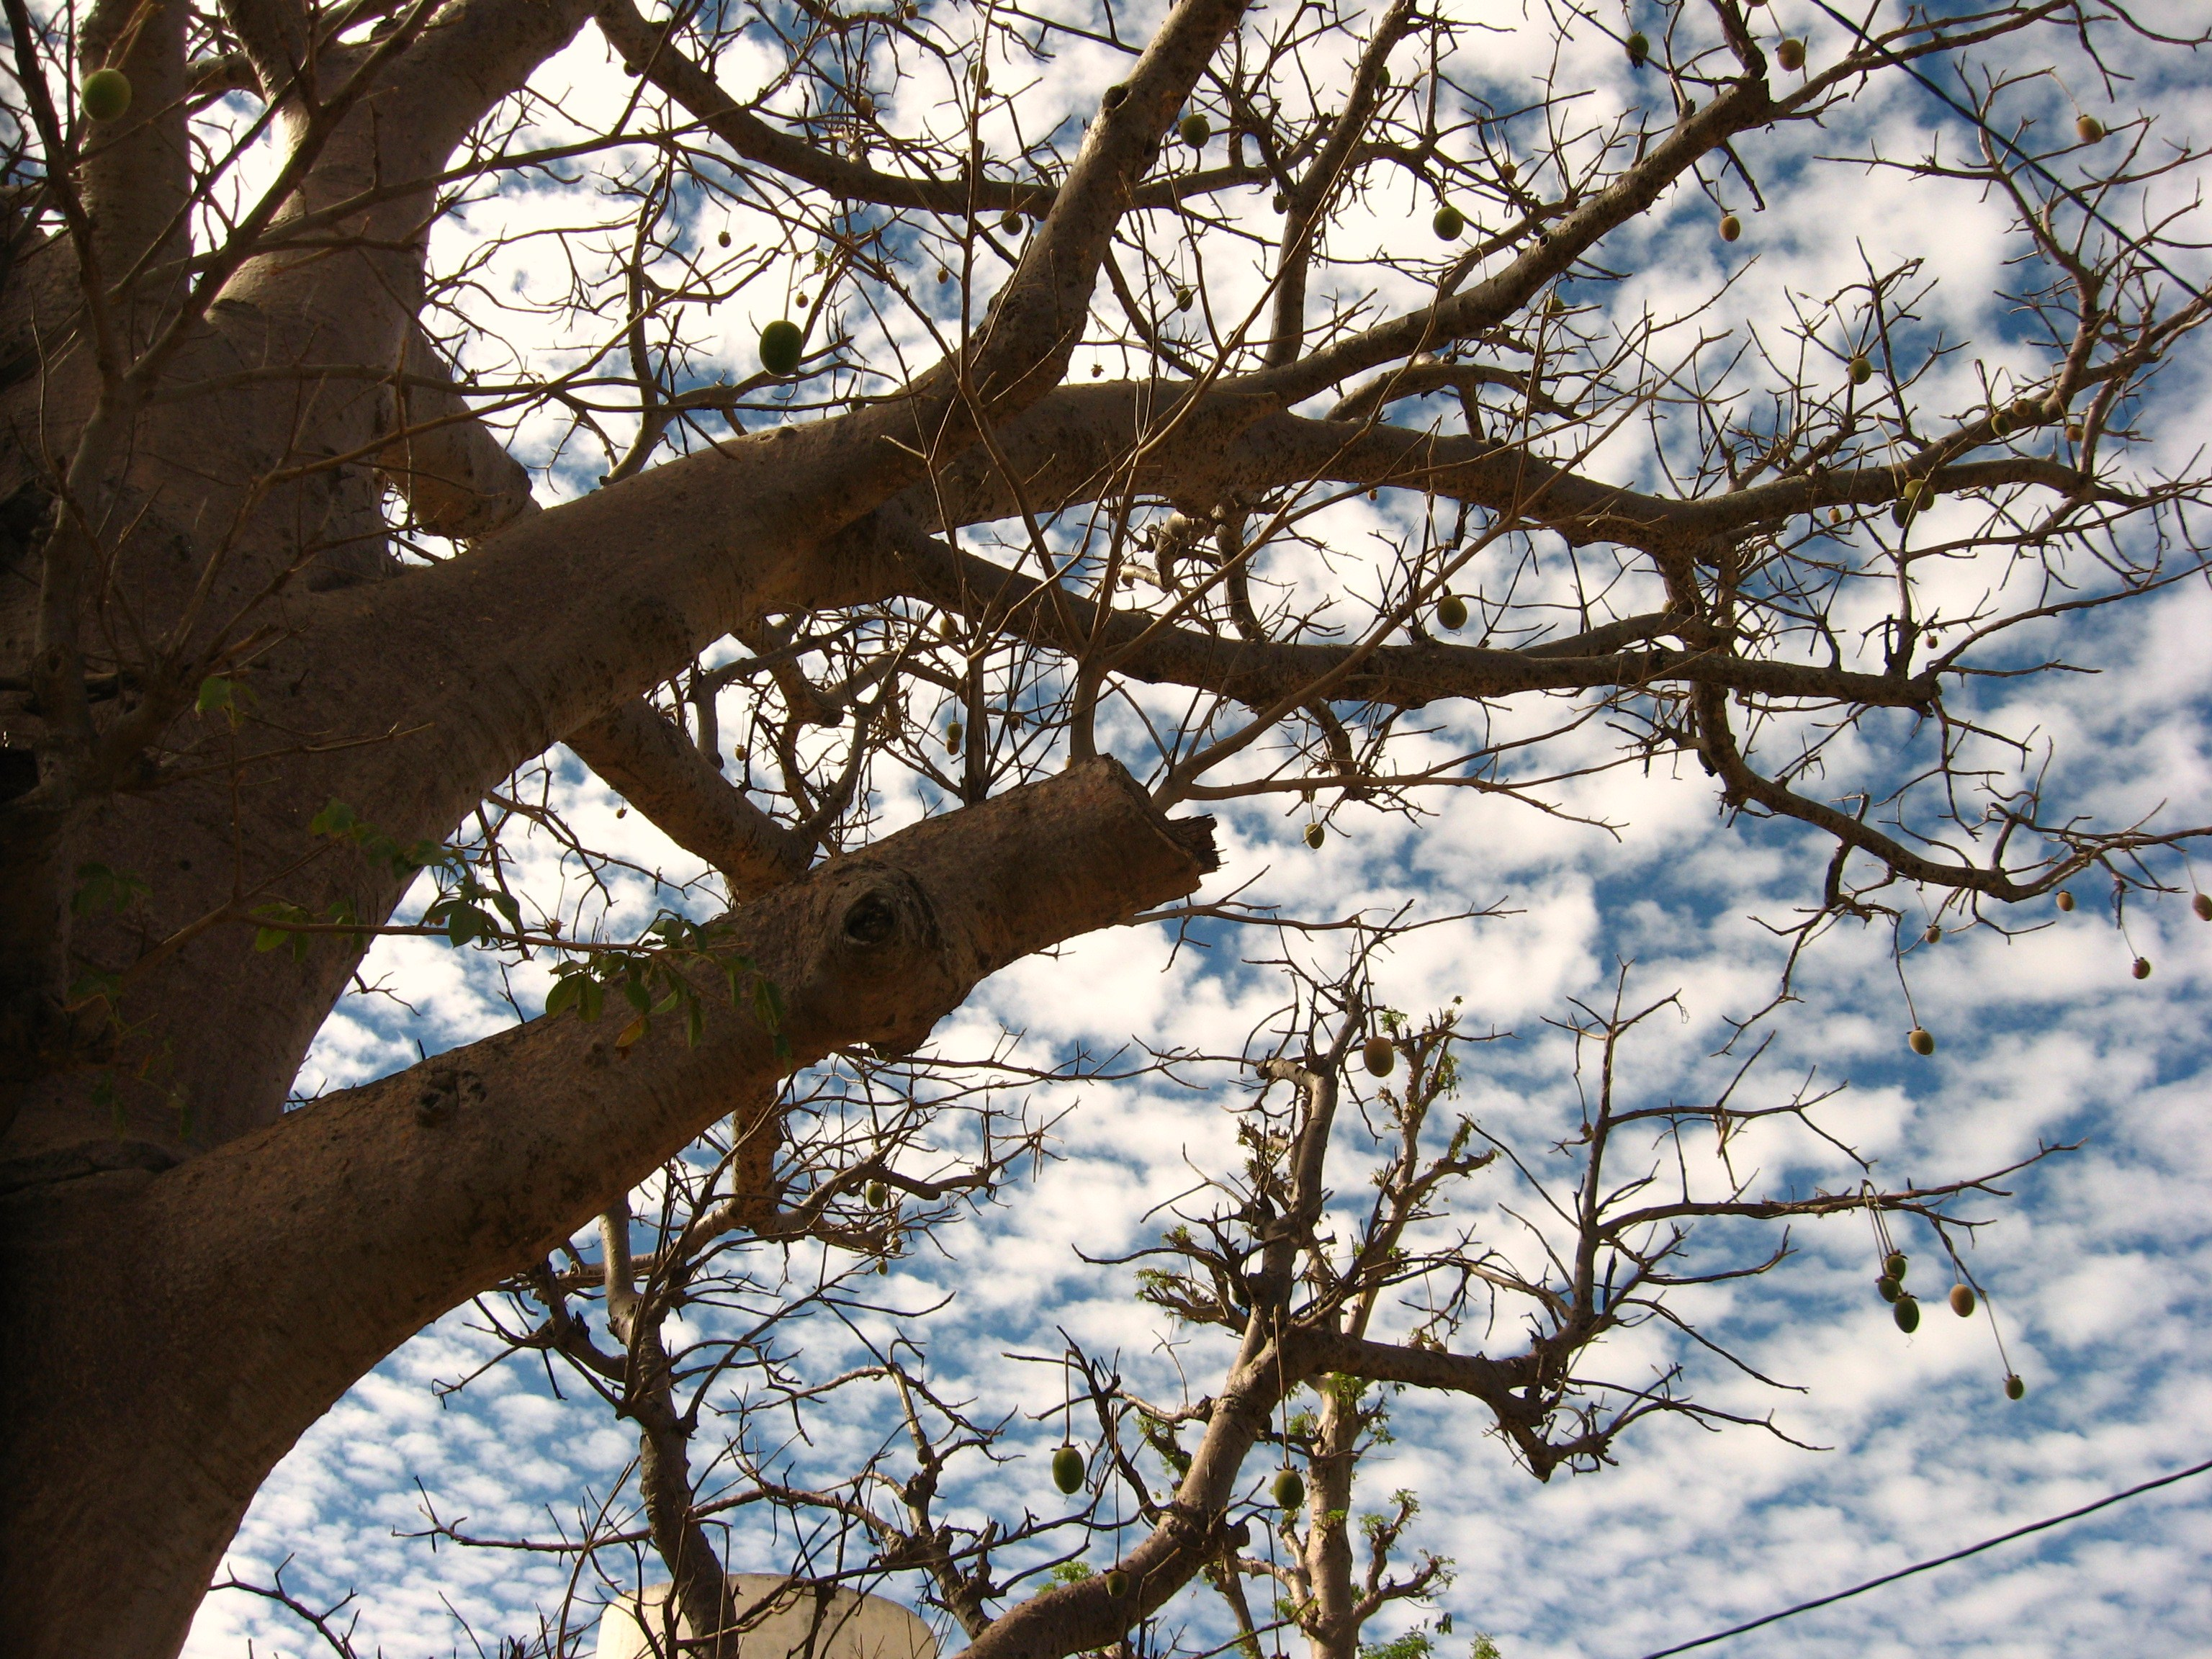 Senegalese farmers use certain trees to forecast the seasons. Traditionally the first leaves on the Baobab tree are a sign of rain, but with climate change such signals are becoming less reliable, Senegal 2008